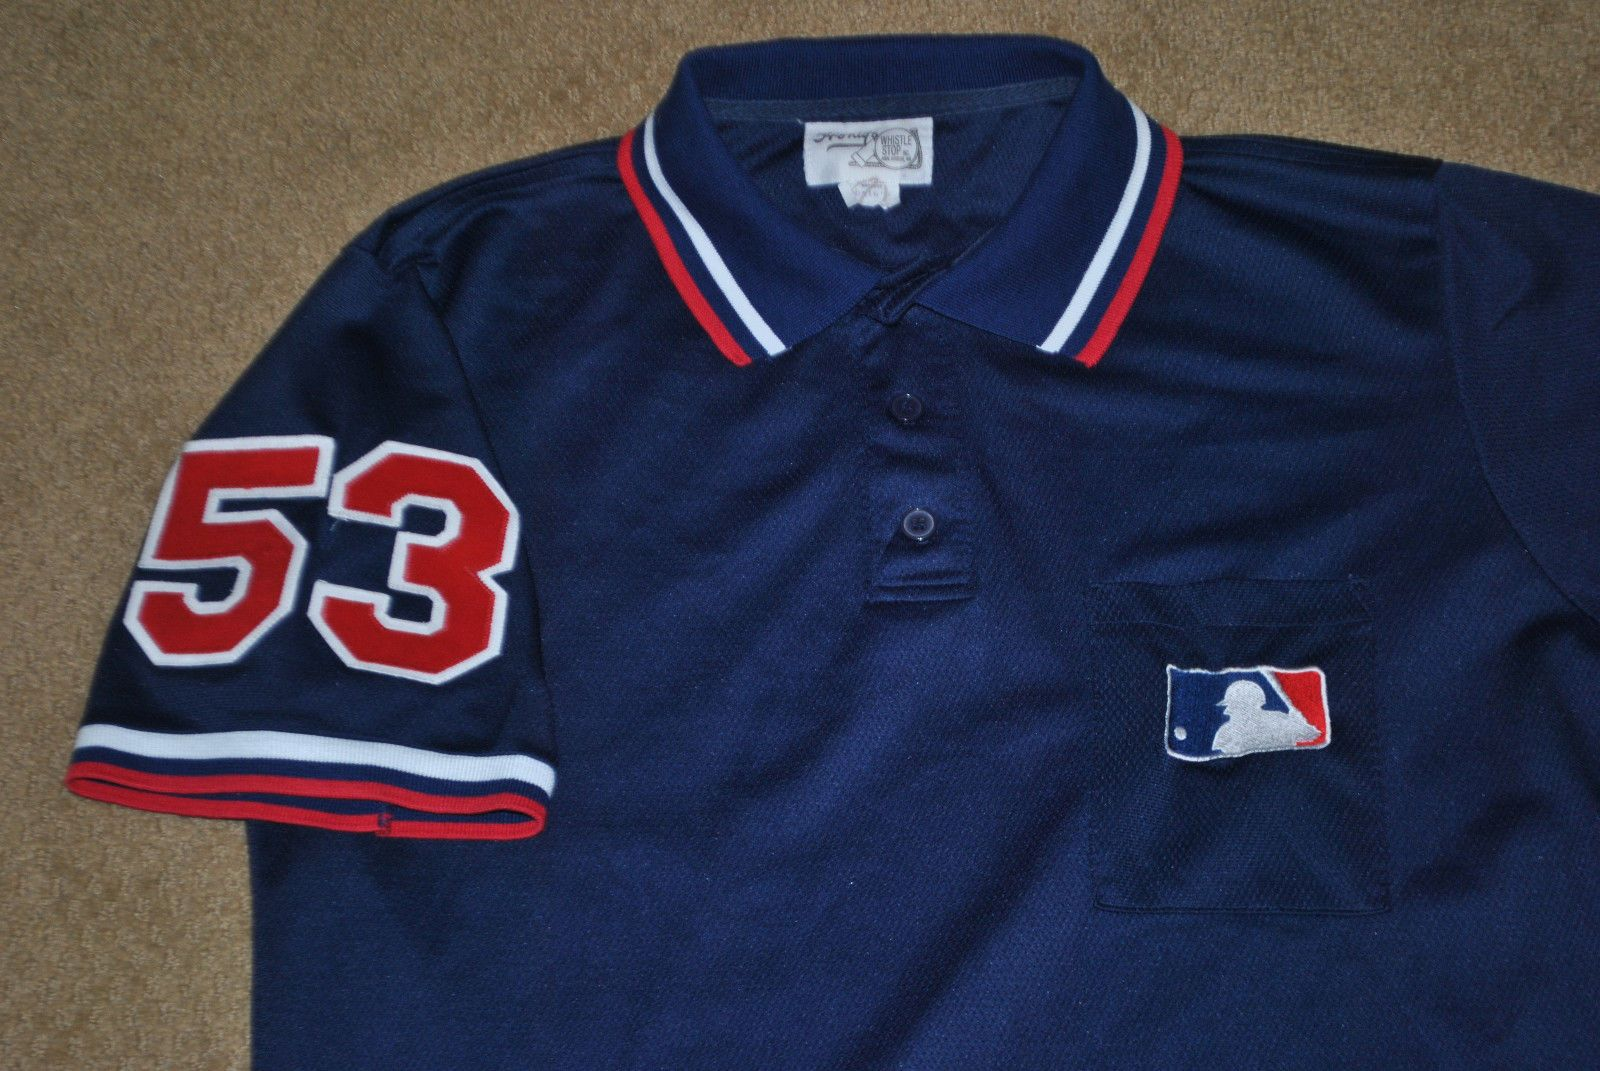 53 Greg Gibson Mlb Umpire Game Worn Navy Jersey Honig S Mlb Mens Tops Game Wear Mens Polo Shirts